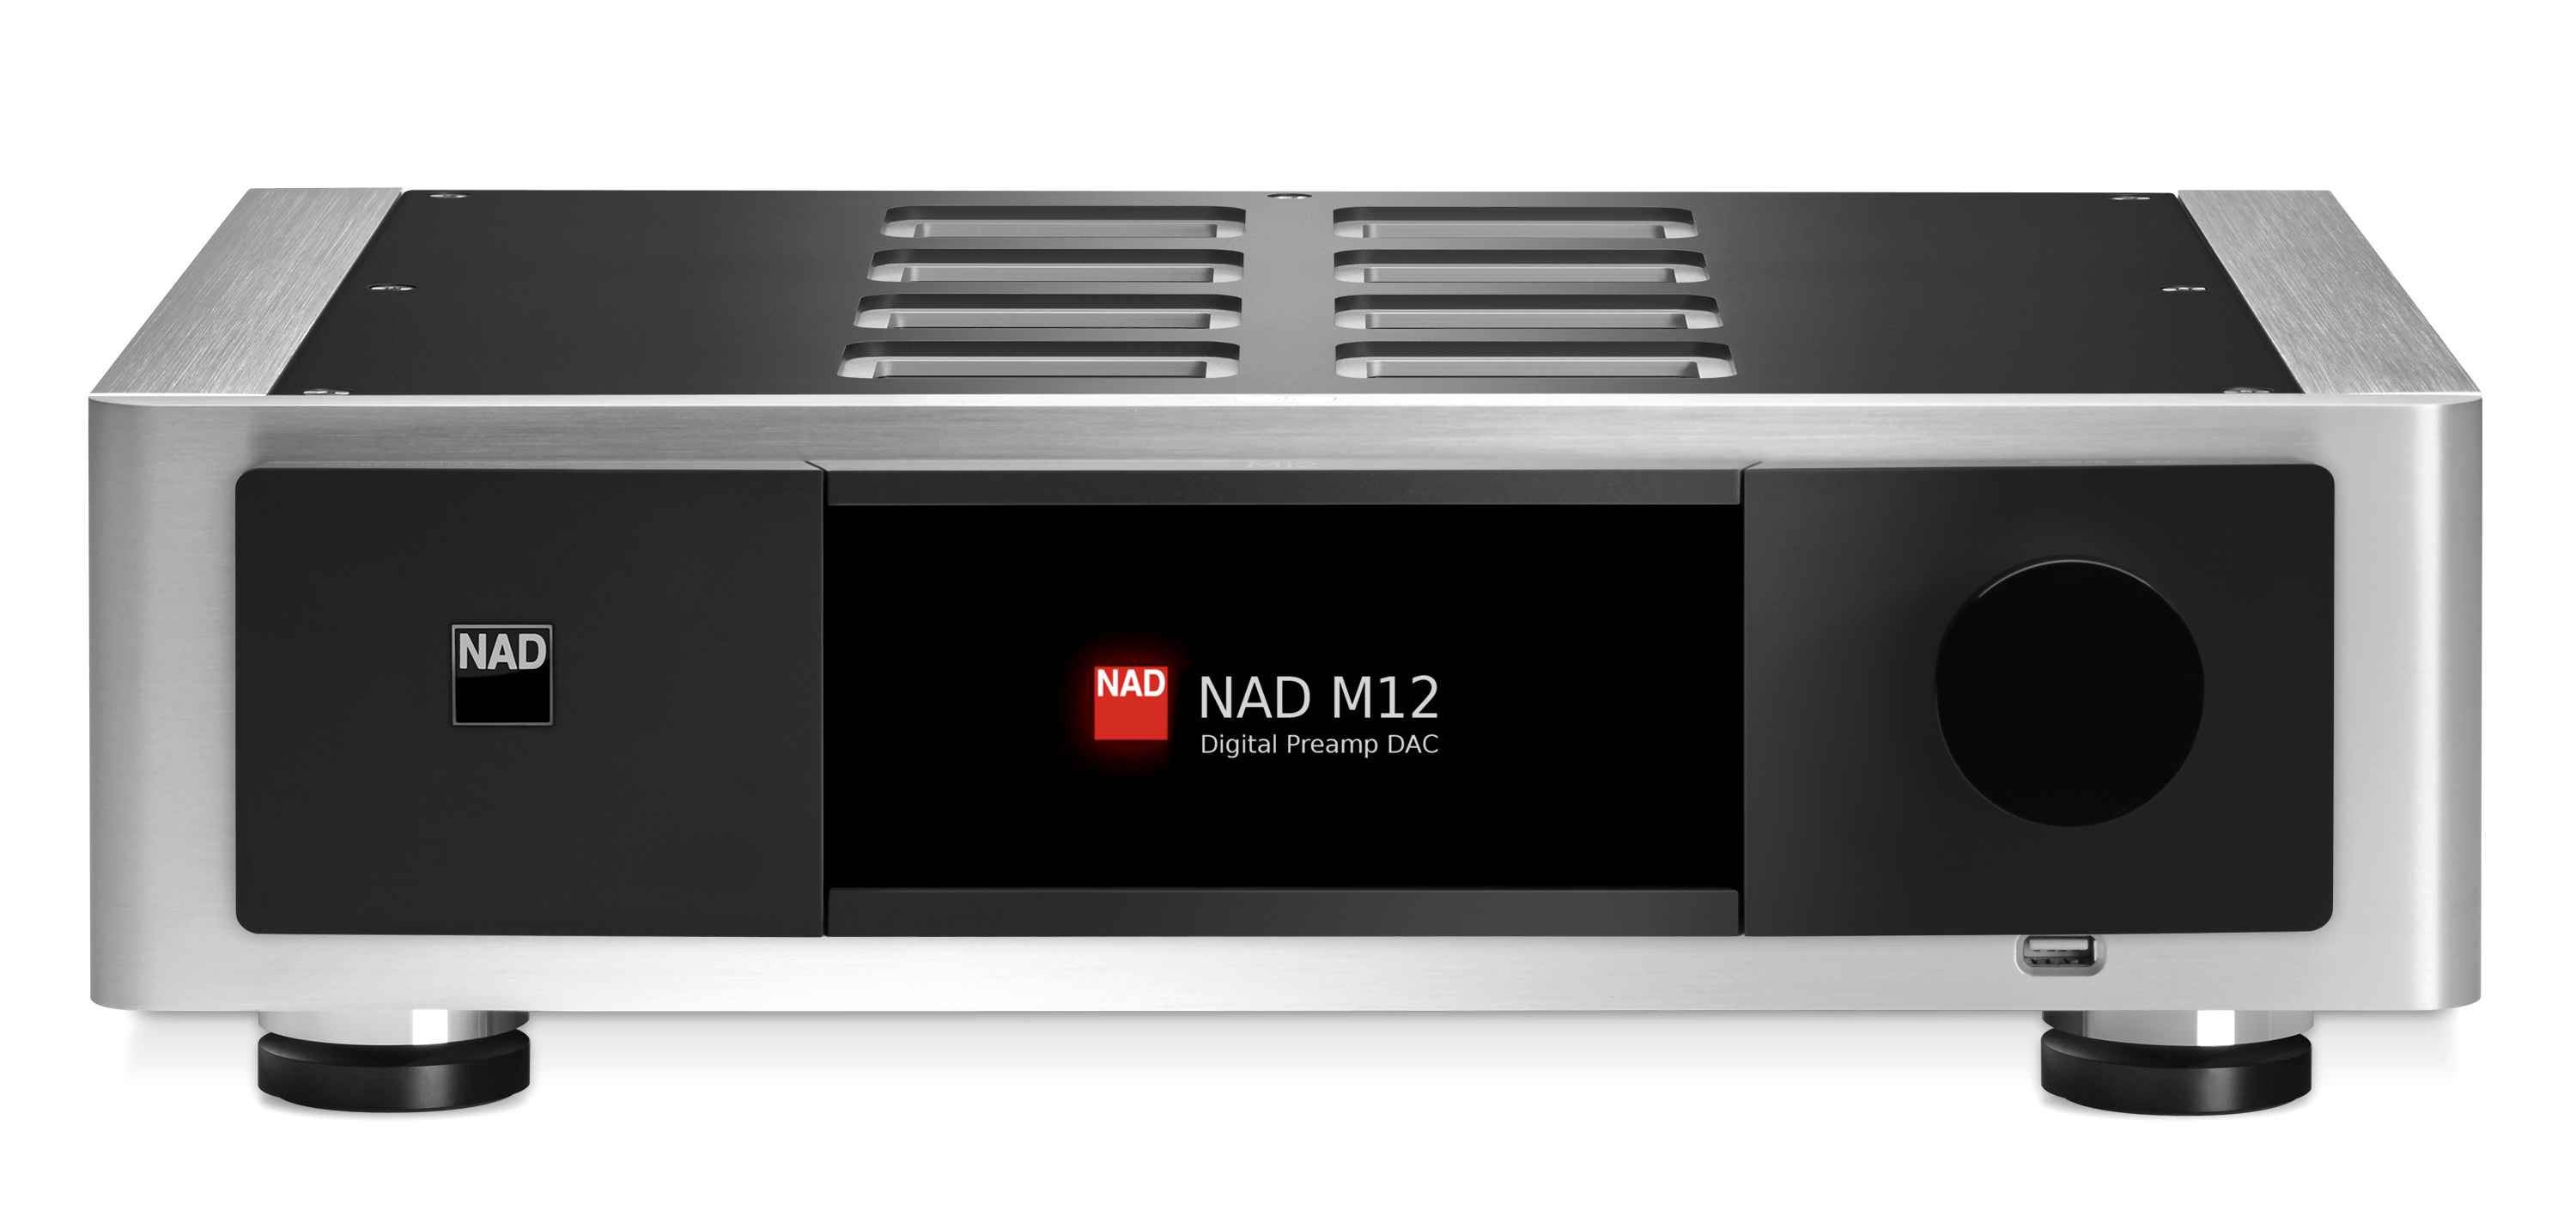 A V Receivers Integrated Amps Preamps Dh Audio And Band 2 Preamplifier M12 Digital Preamp Dac